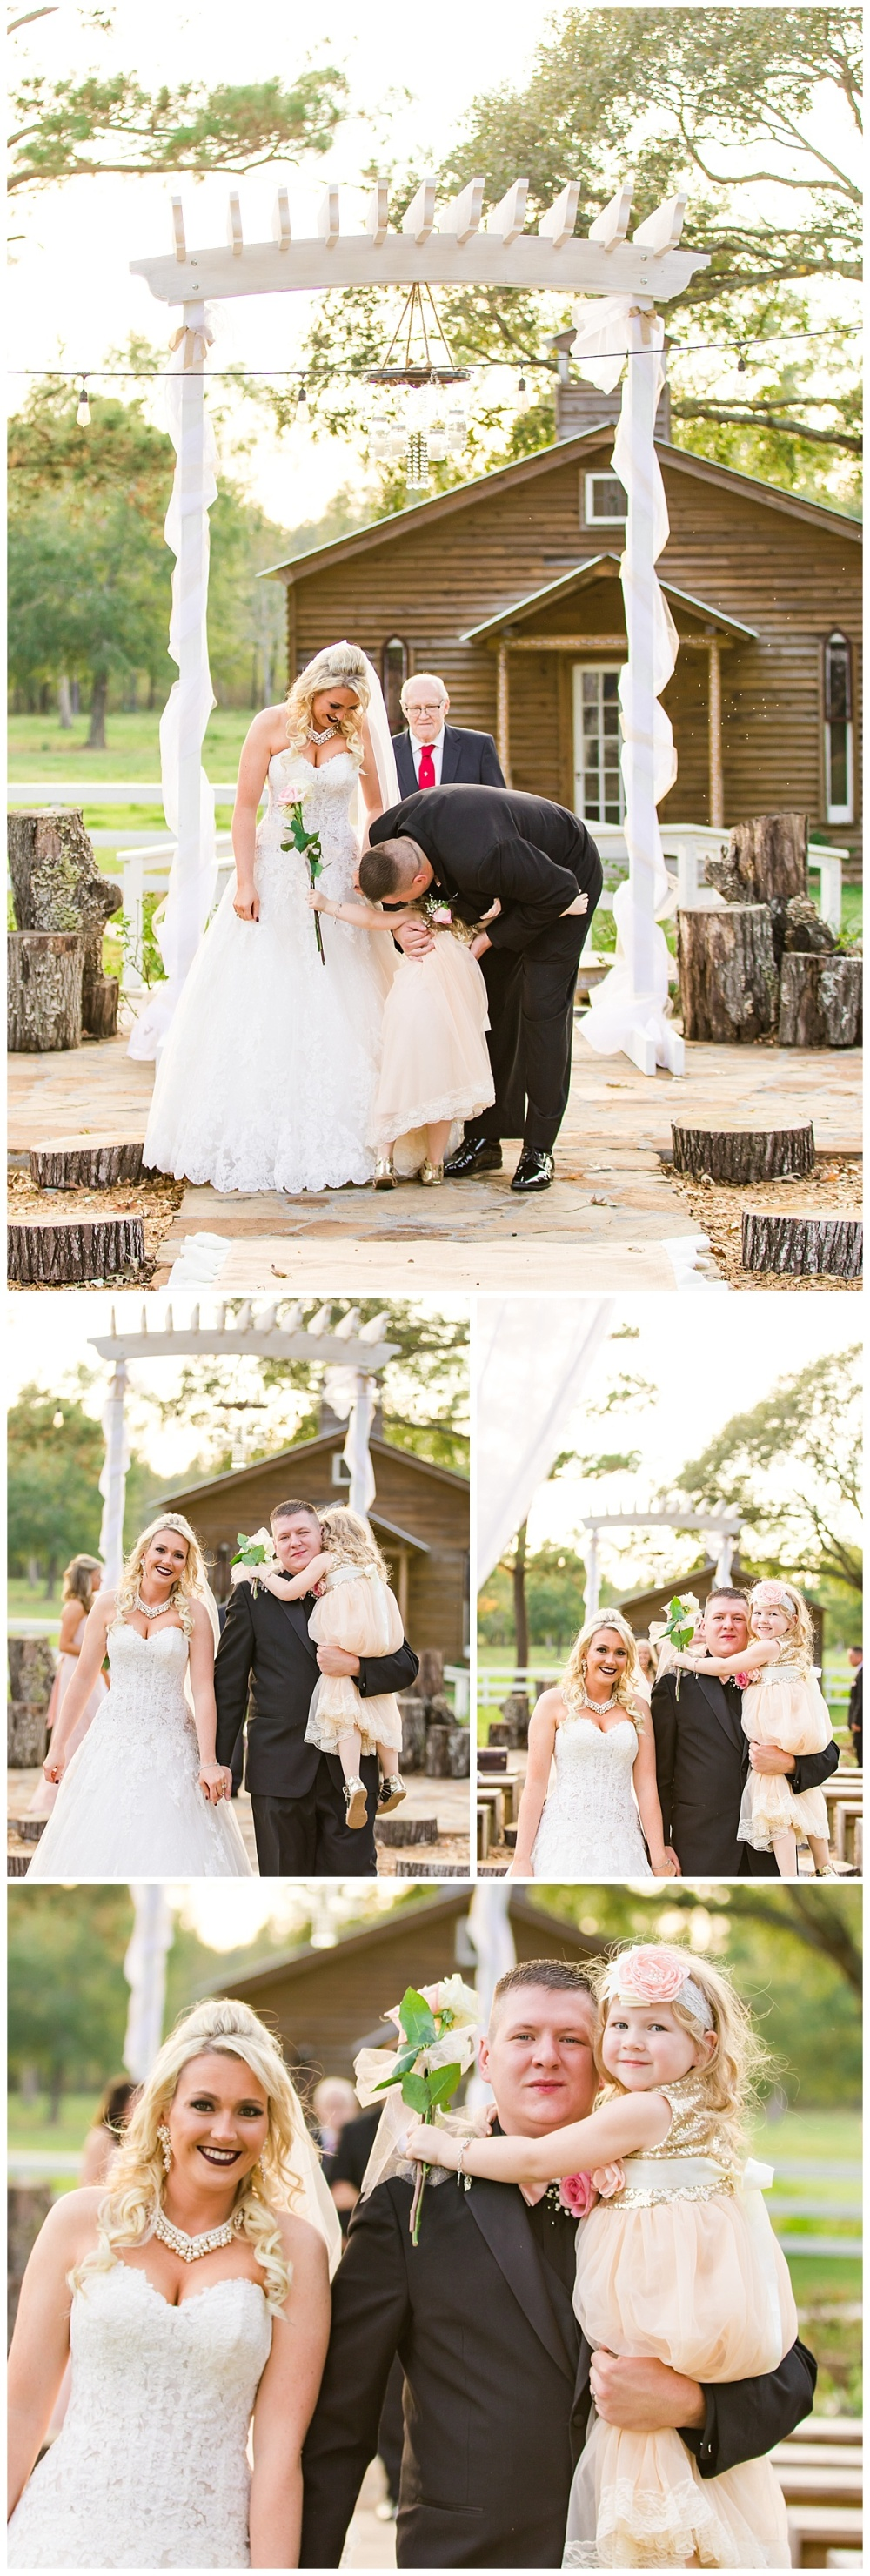 Carly-Barton-Photography-South-Texas-Wedding-Photographer-SJP-Ranch-Hardin_0080